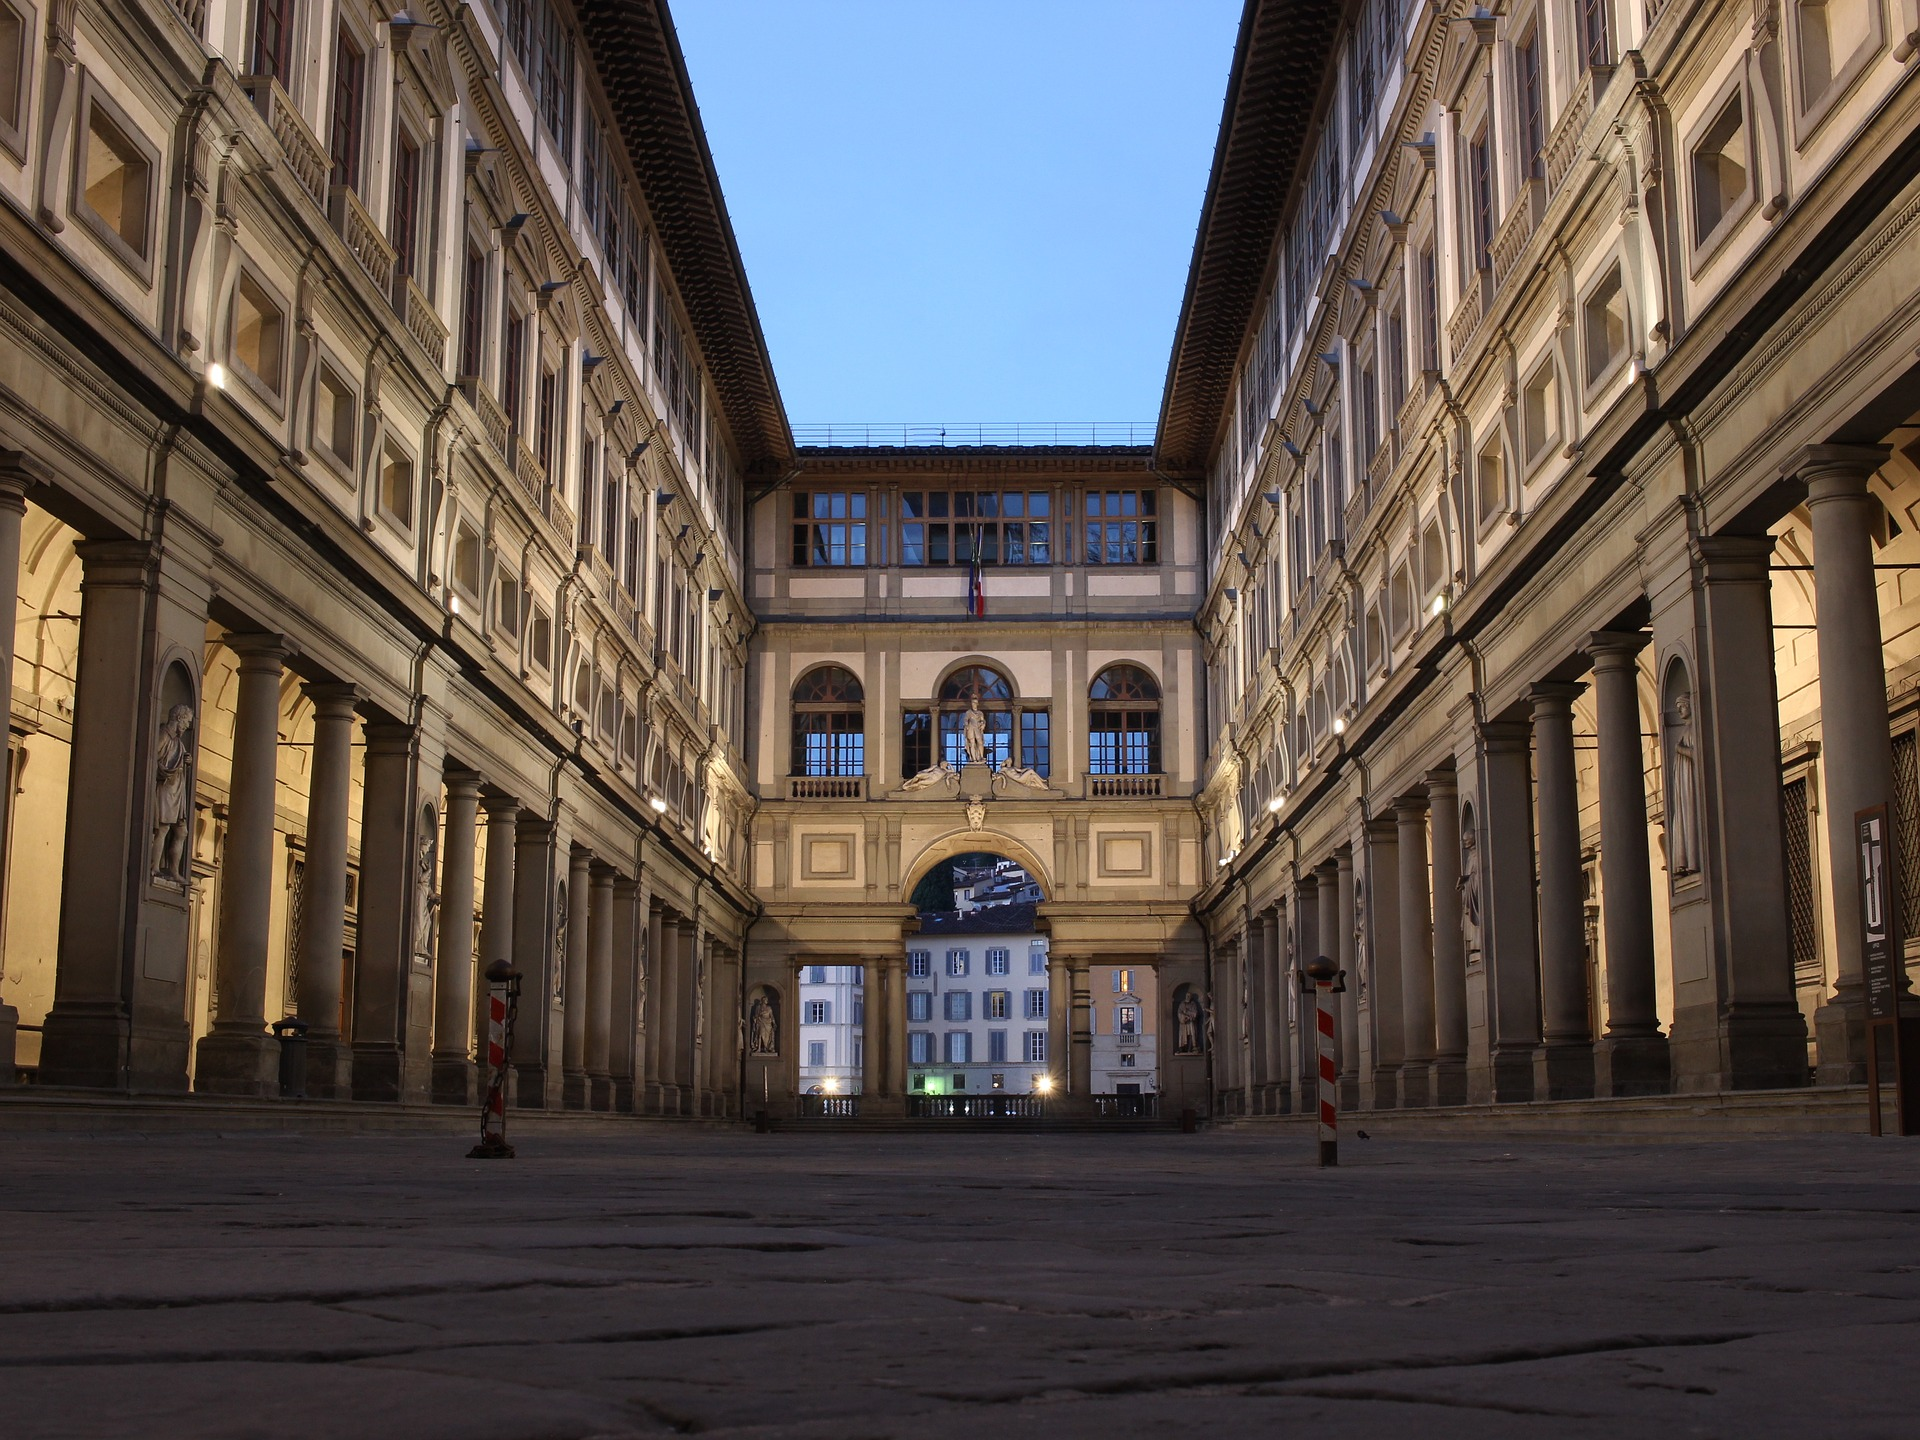 Ufici The 10 Most Important Artworks At The Uffizi Gallery Florence